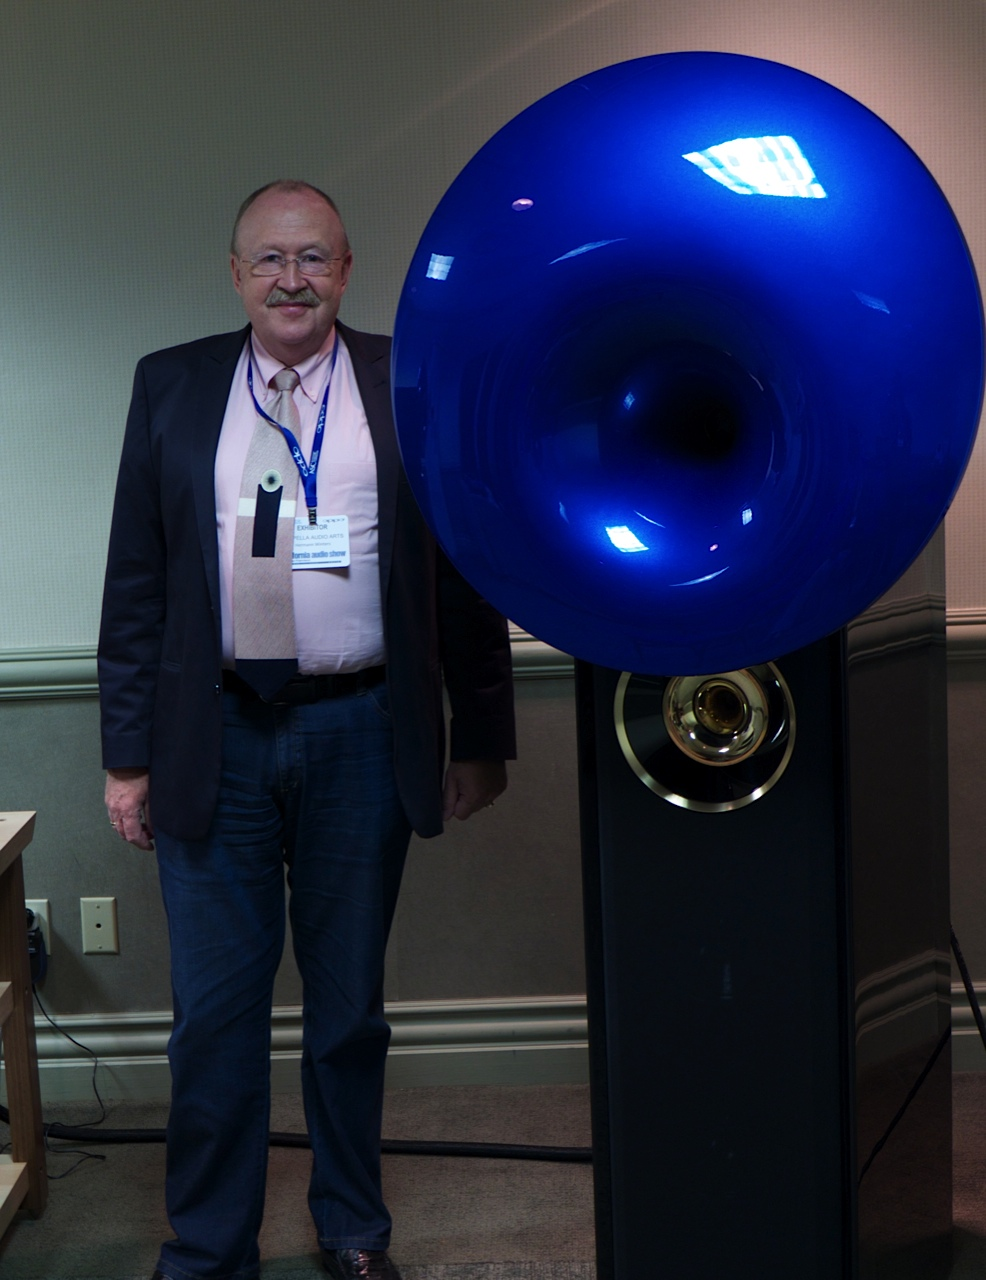 Acapella's New Atlas Speaker $94,000